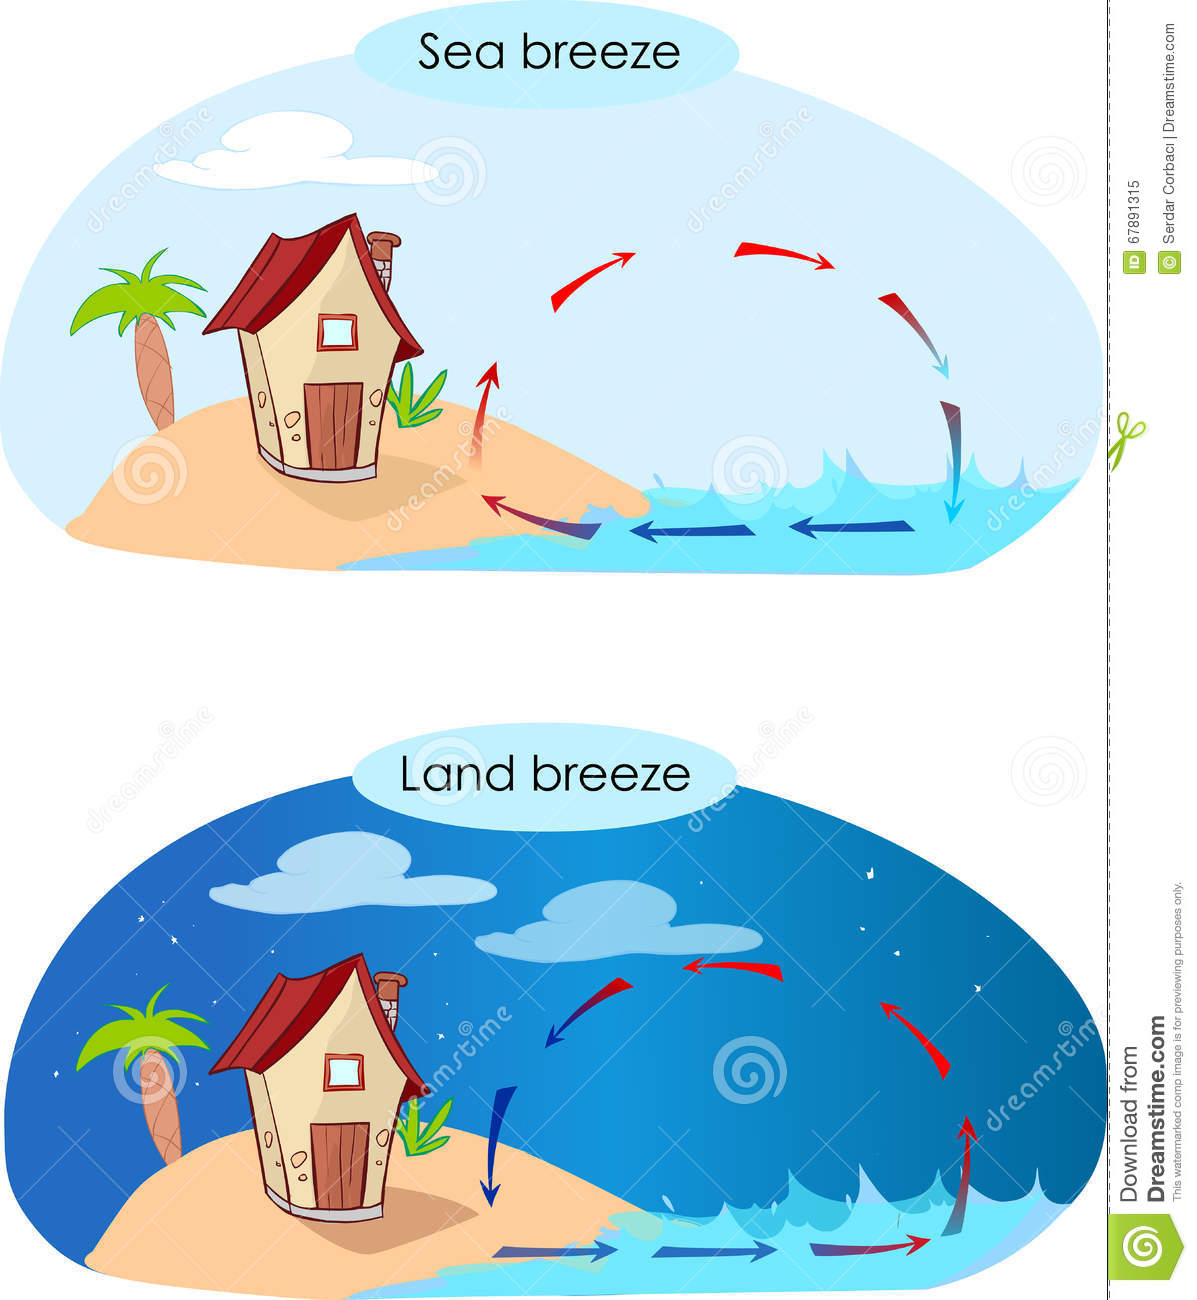 land breeze information A land breeze is a breeze blowing toward the sea from the land is is common at night, when it is also called a katabatic wind, generated as the land cools.